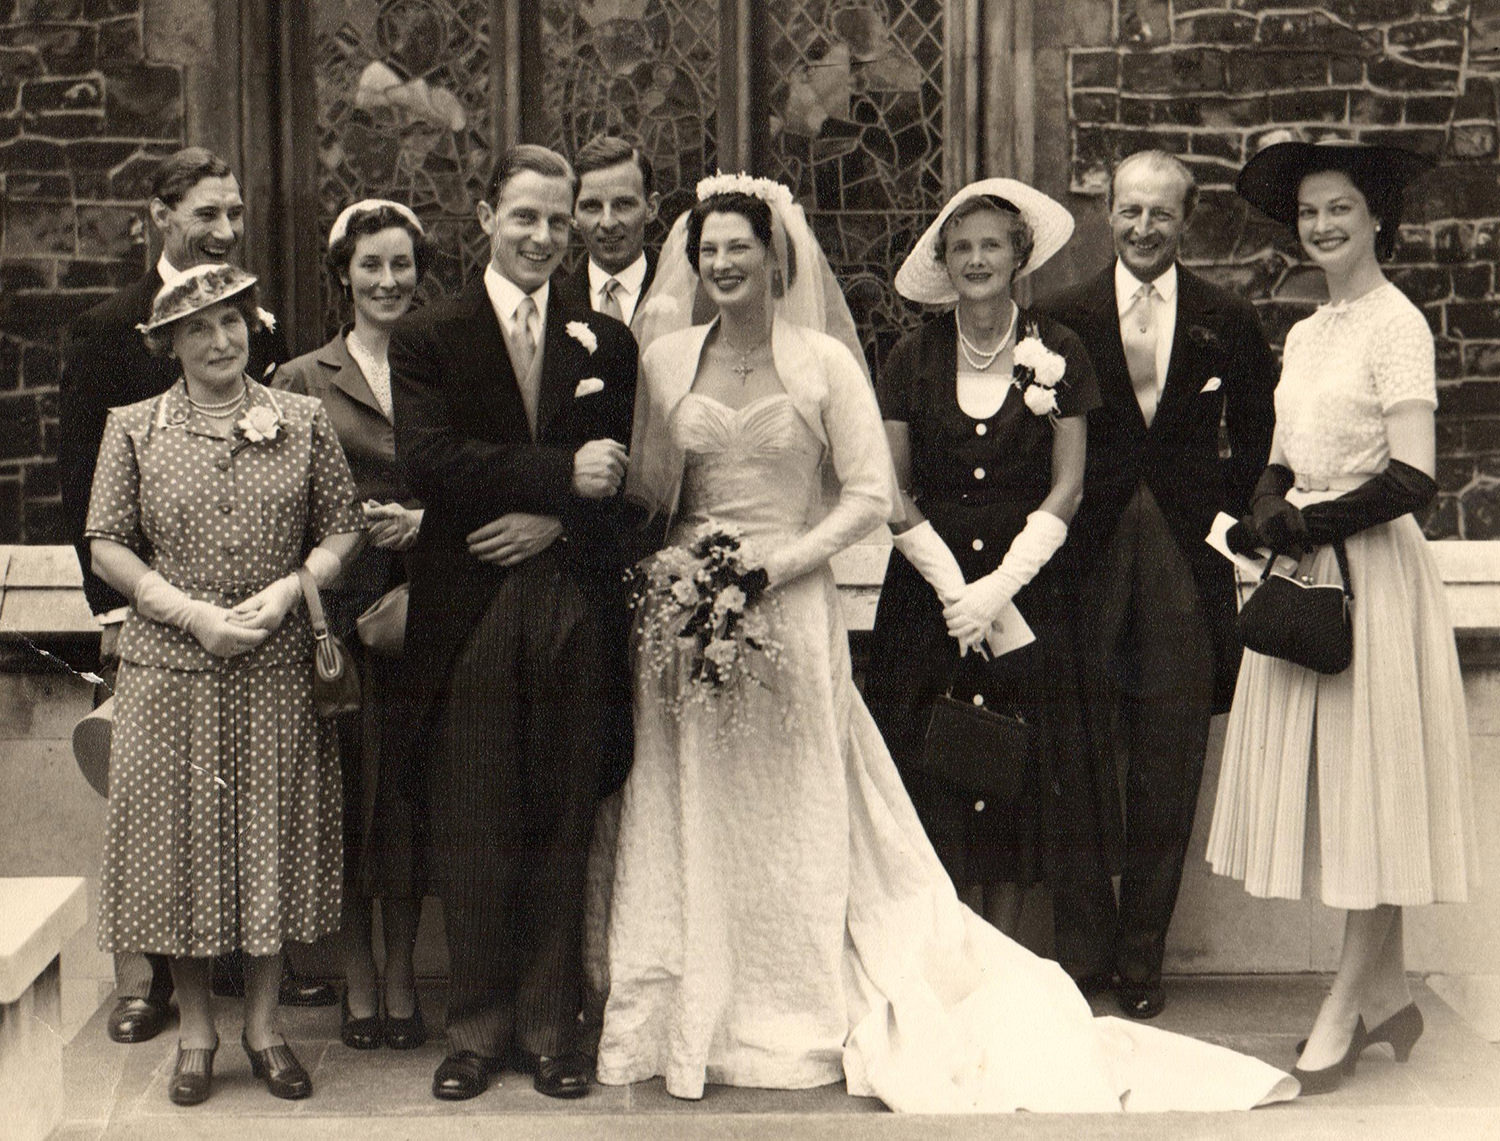 Maureen_Baker_Munton_wedding_with_Daphne_and_Boy.jpg